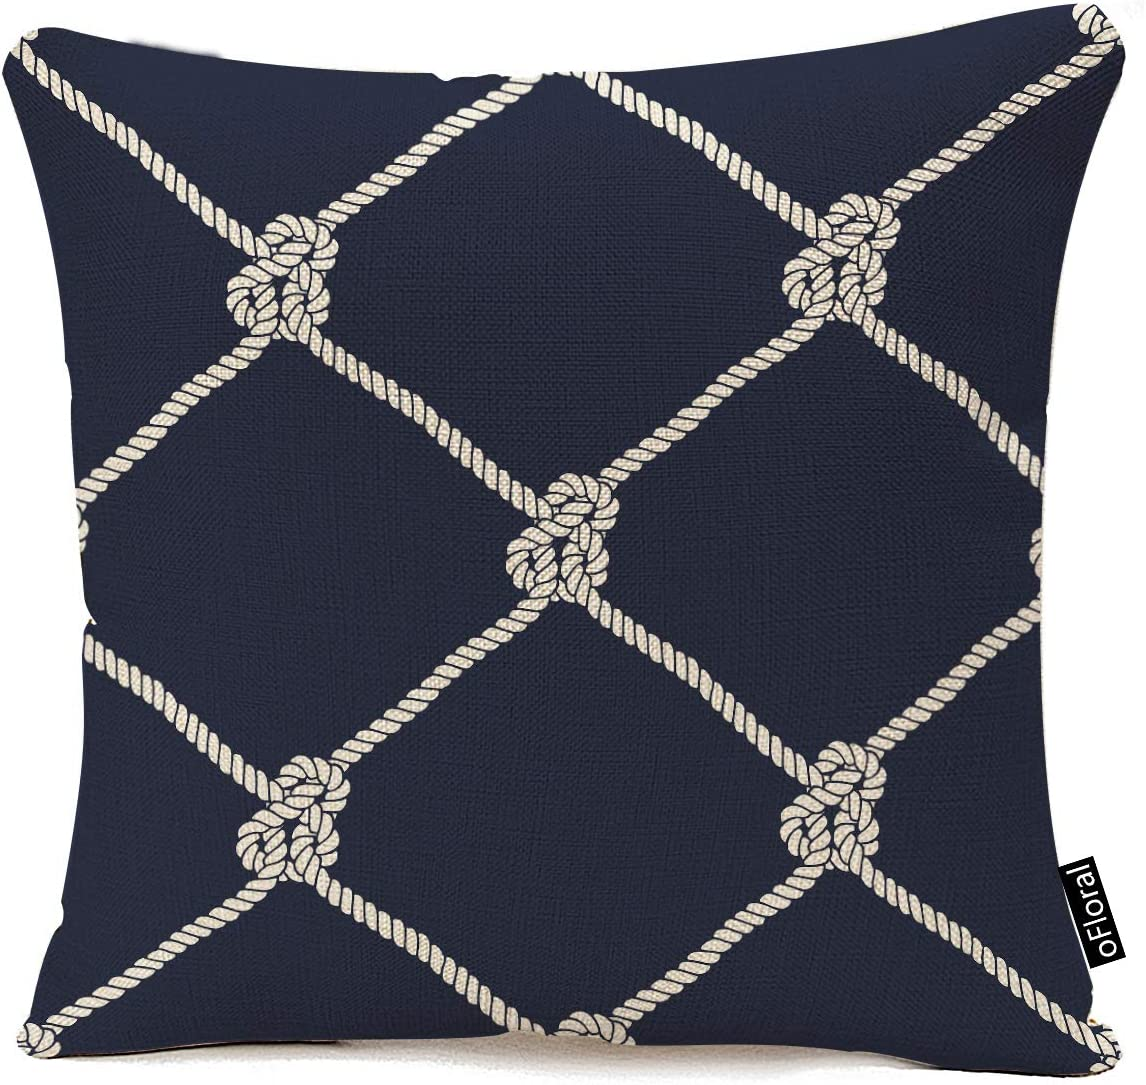 oFloral Decorative Nautical Rope Pattern Cotton Linen Throw Pillow Cover Endless Navy with White Fishing Net and Marine Knots on Dark Blue Trendy Maritime Style Decorative Pillow Case 16x16 Inches